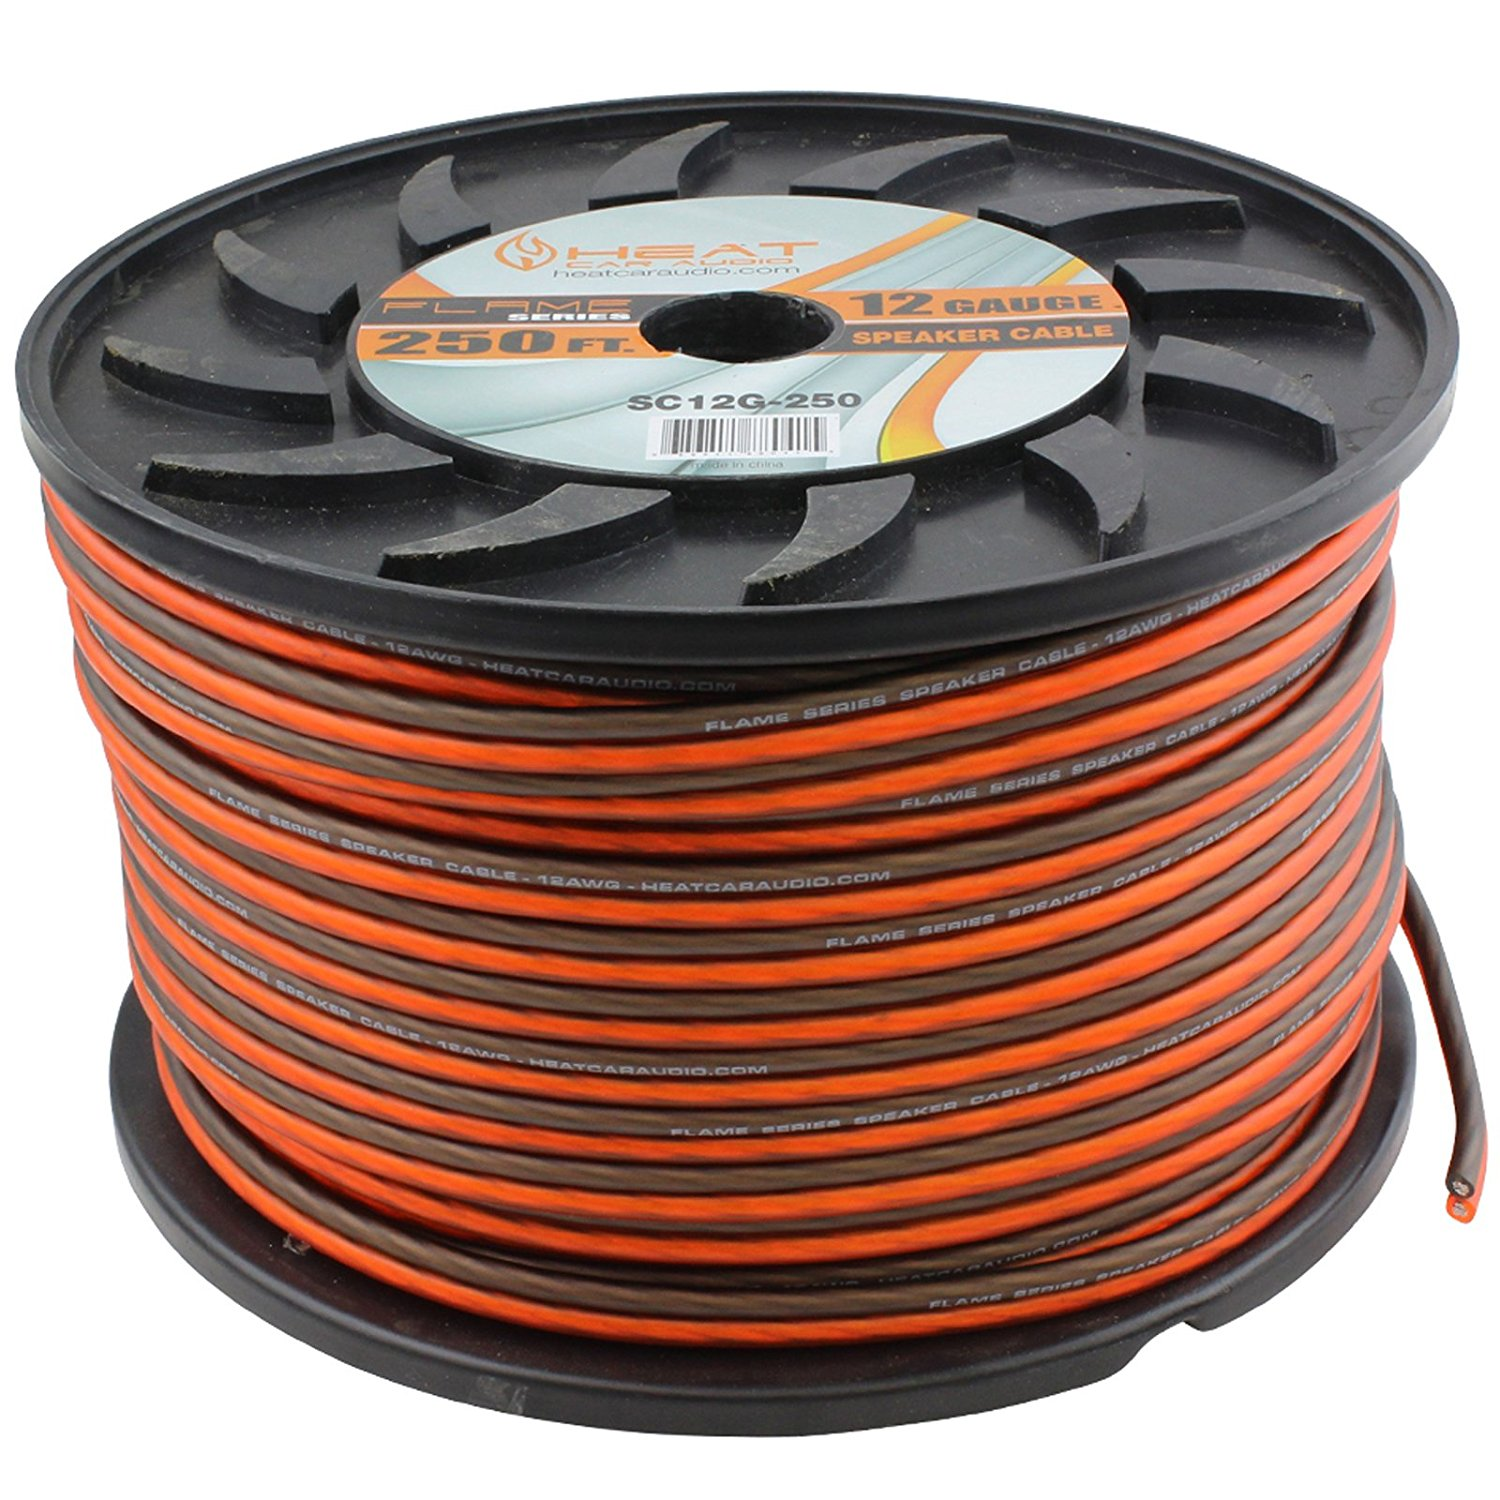 Cheap Best Car Audio Speaker Wire Find Home Wiring Get Quotations 250 12 Gauge Cca Ft Feet 12awg Cable Sc12g